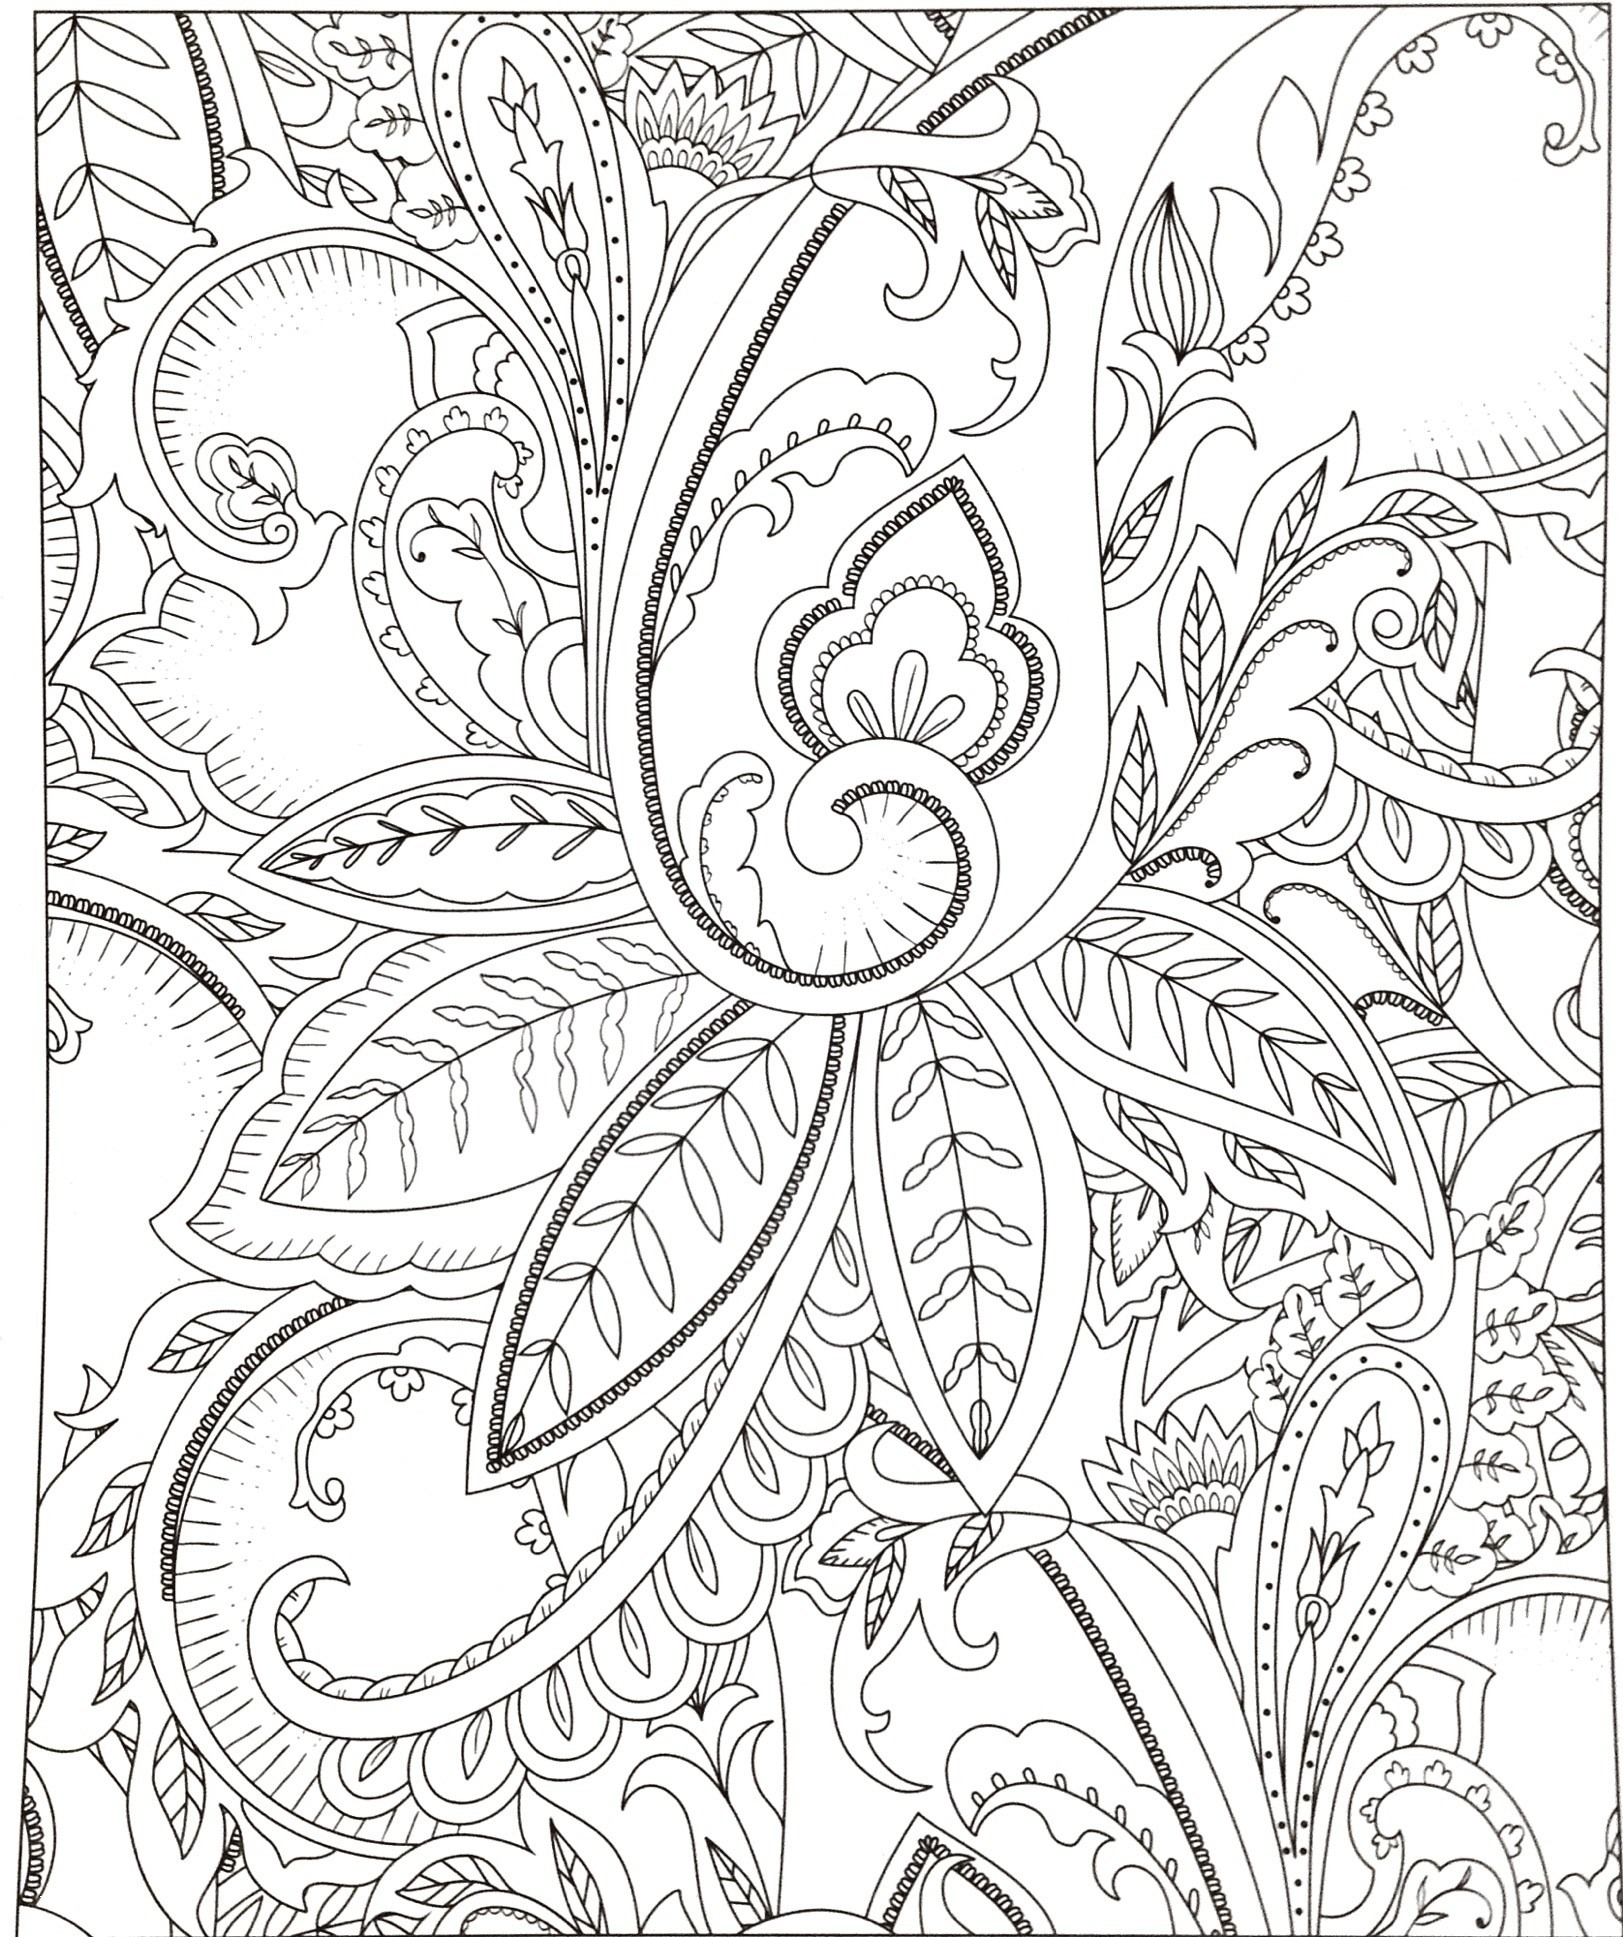 cool printable coloring pages Download-Free Printable Coloring Pages for Thanksgiving 15-e